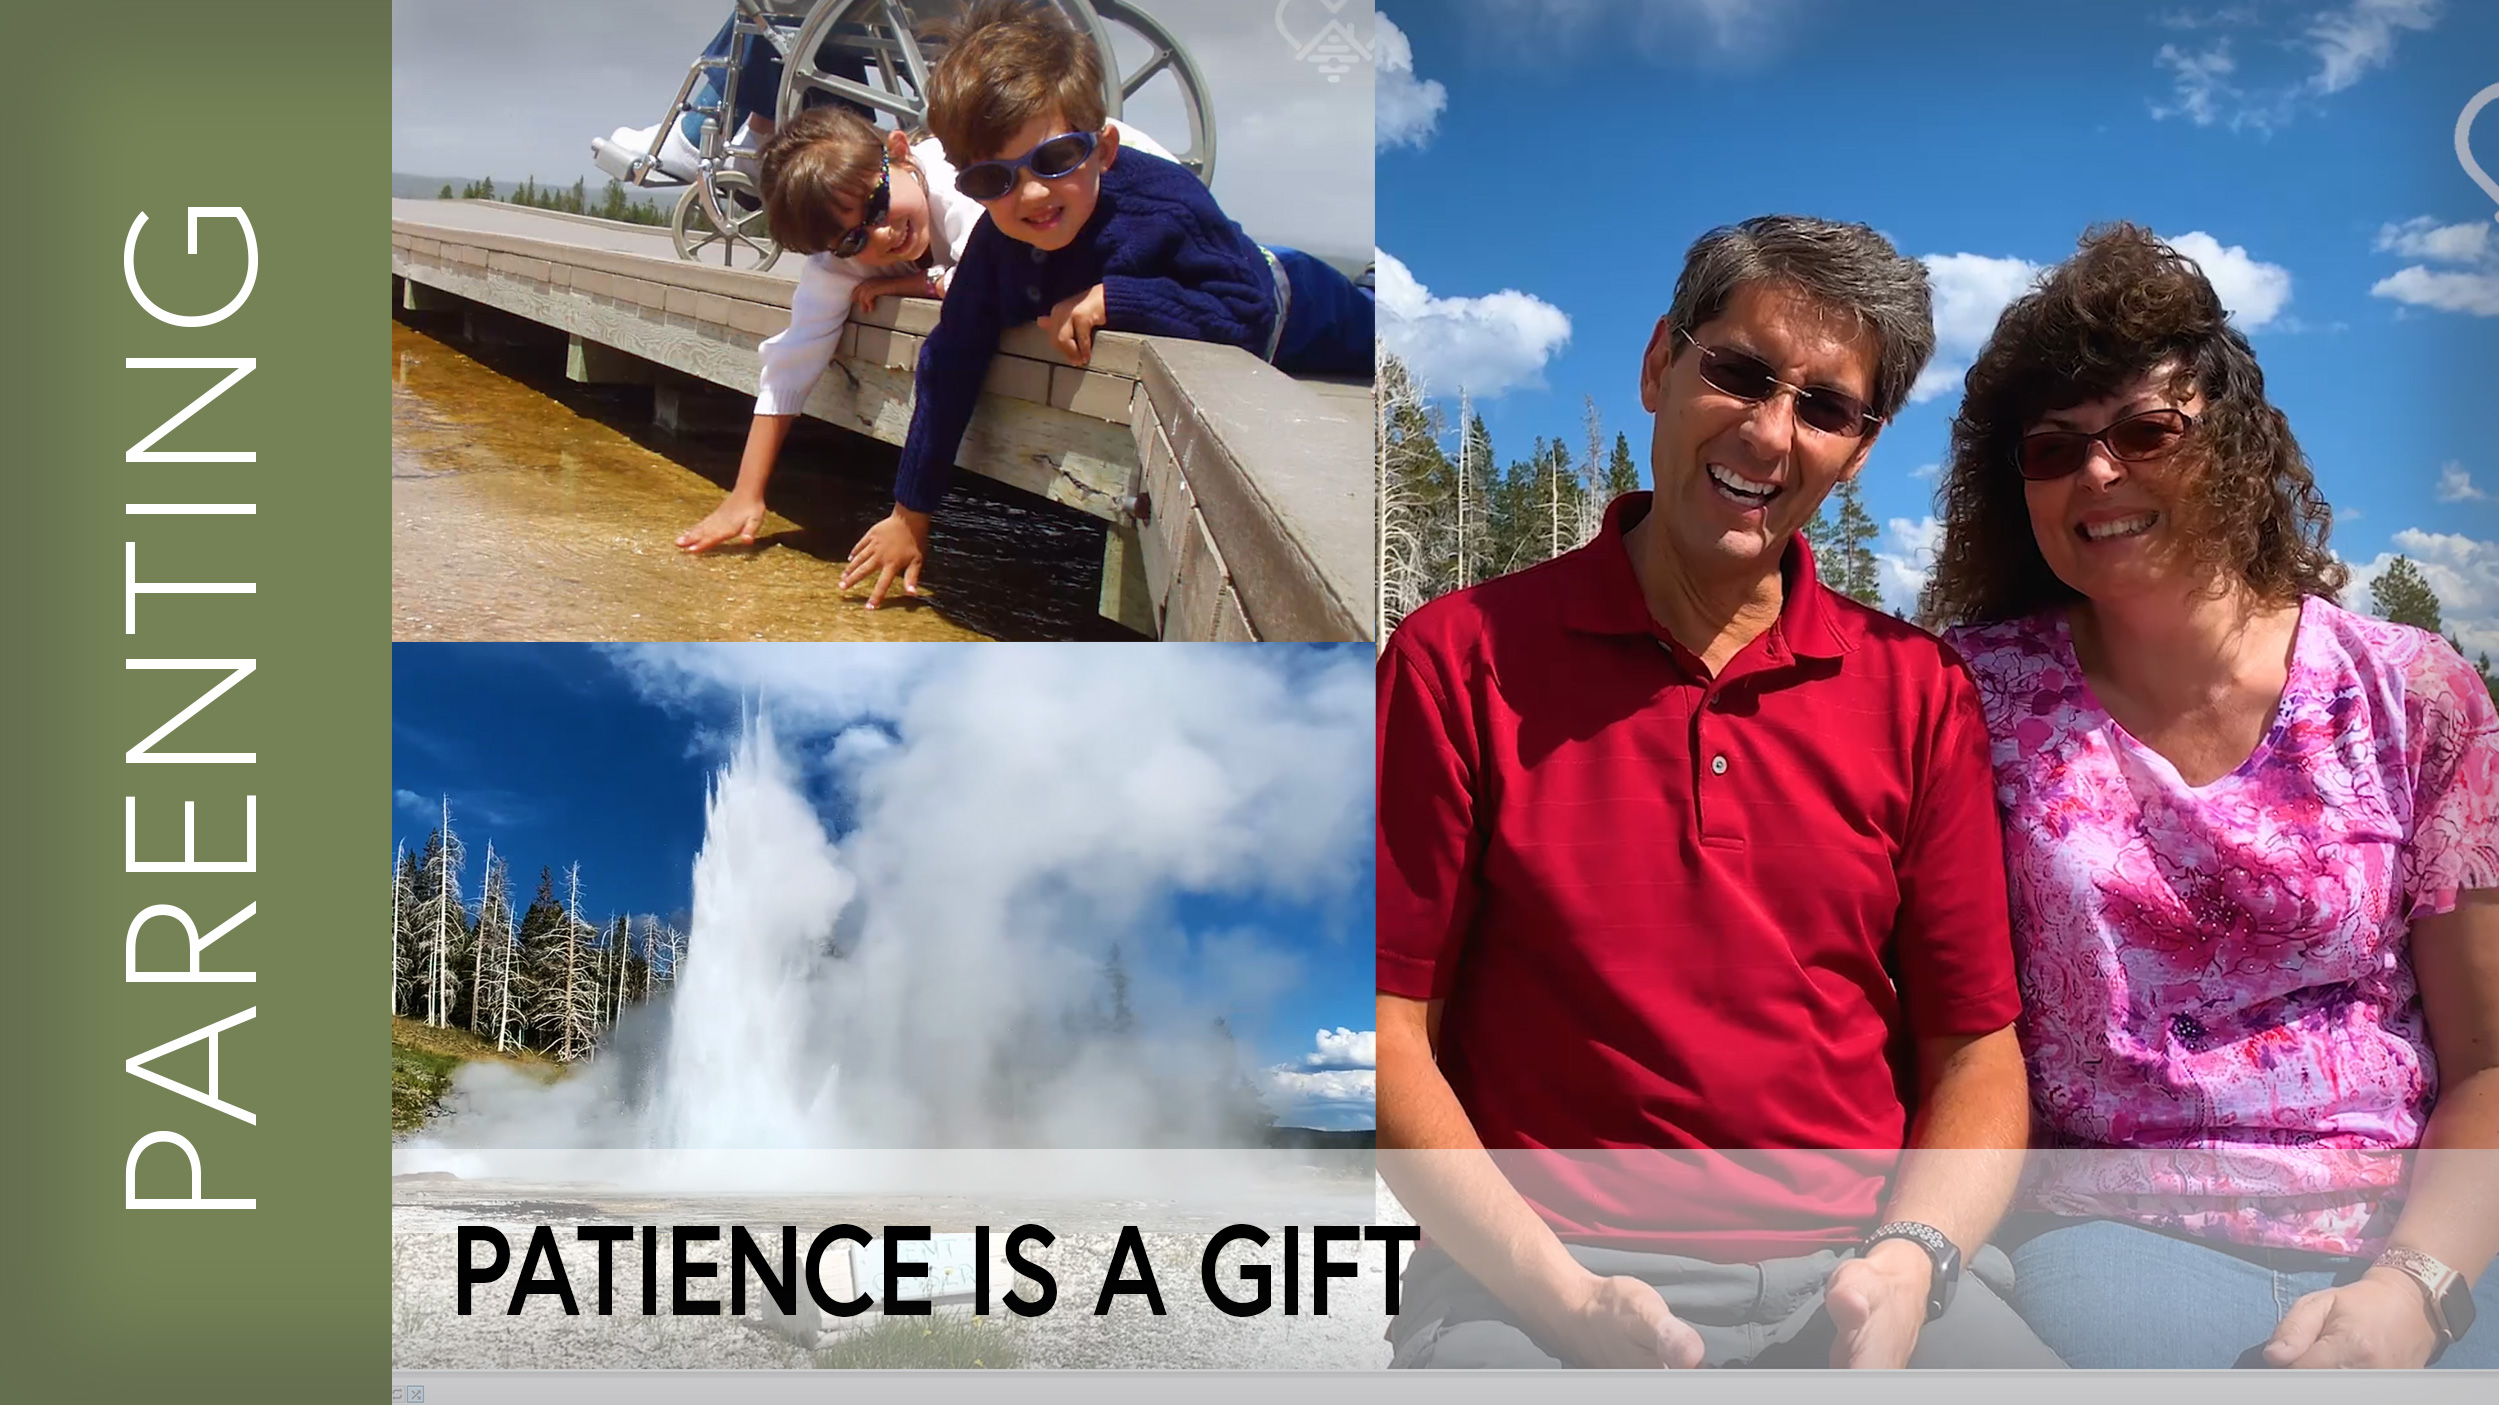 pATIENCE-IS-A-GIFT.jpg